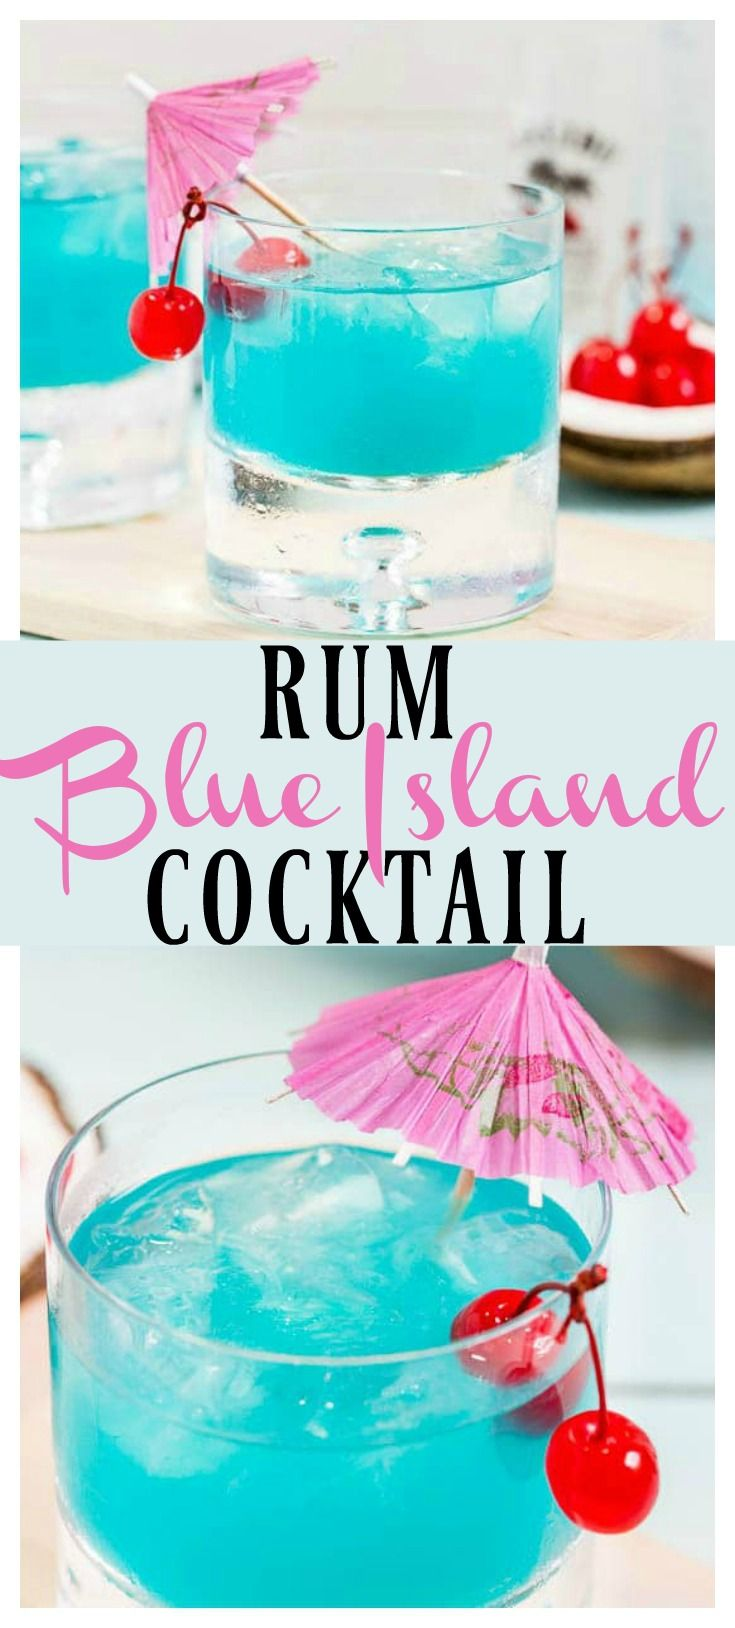 Rum Blue Island Splash Cocktail | This easy cocktail is like a taste of the tropics! Made with coconut, citrus, fruity flavors and rum, this libation is smooth and fabulously refreshing! #rum #cocktail #island #blue #drink via @nospoonn